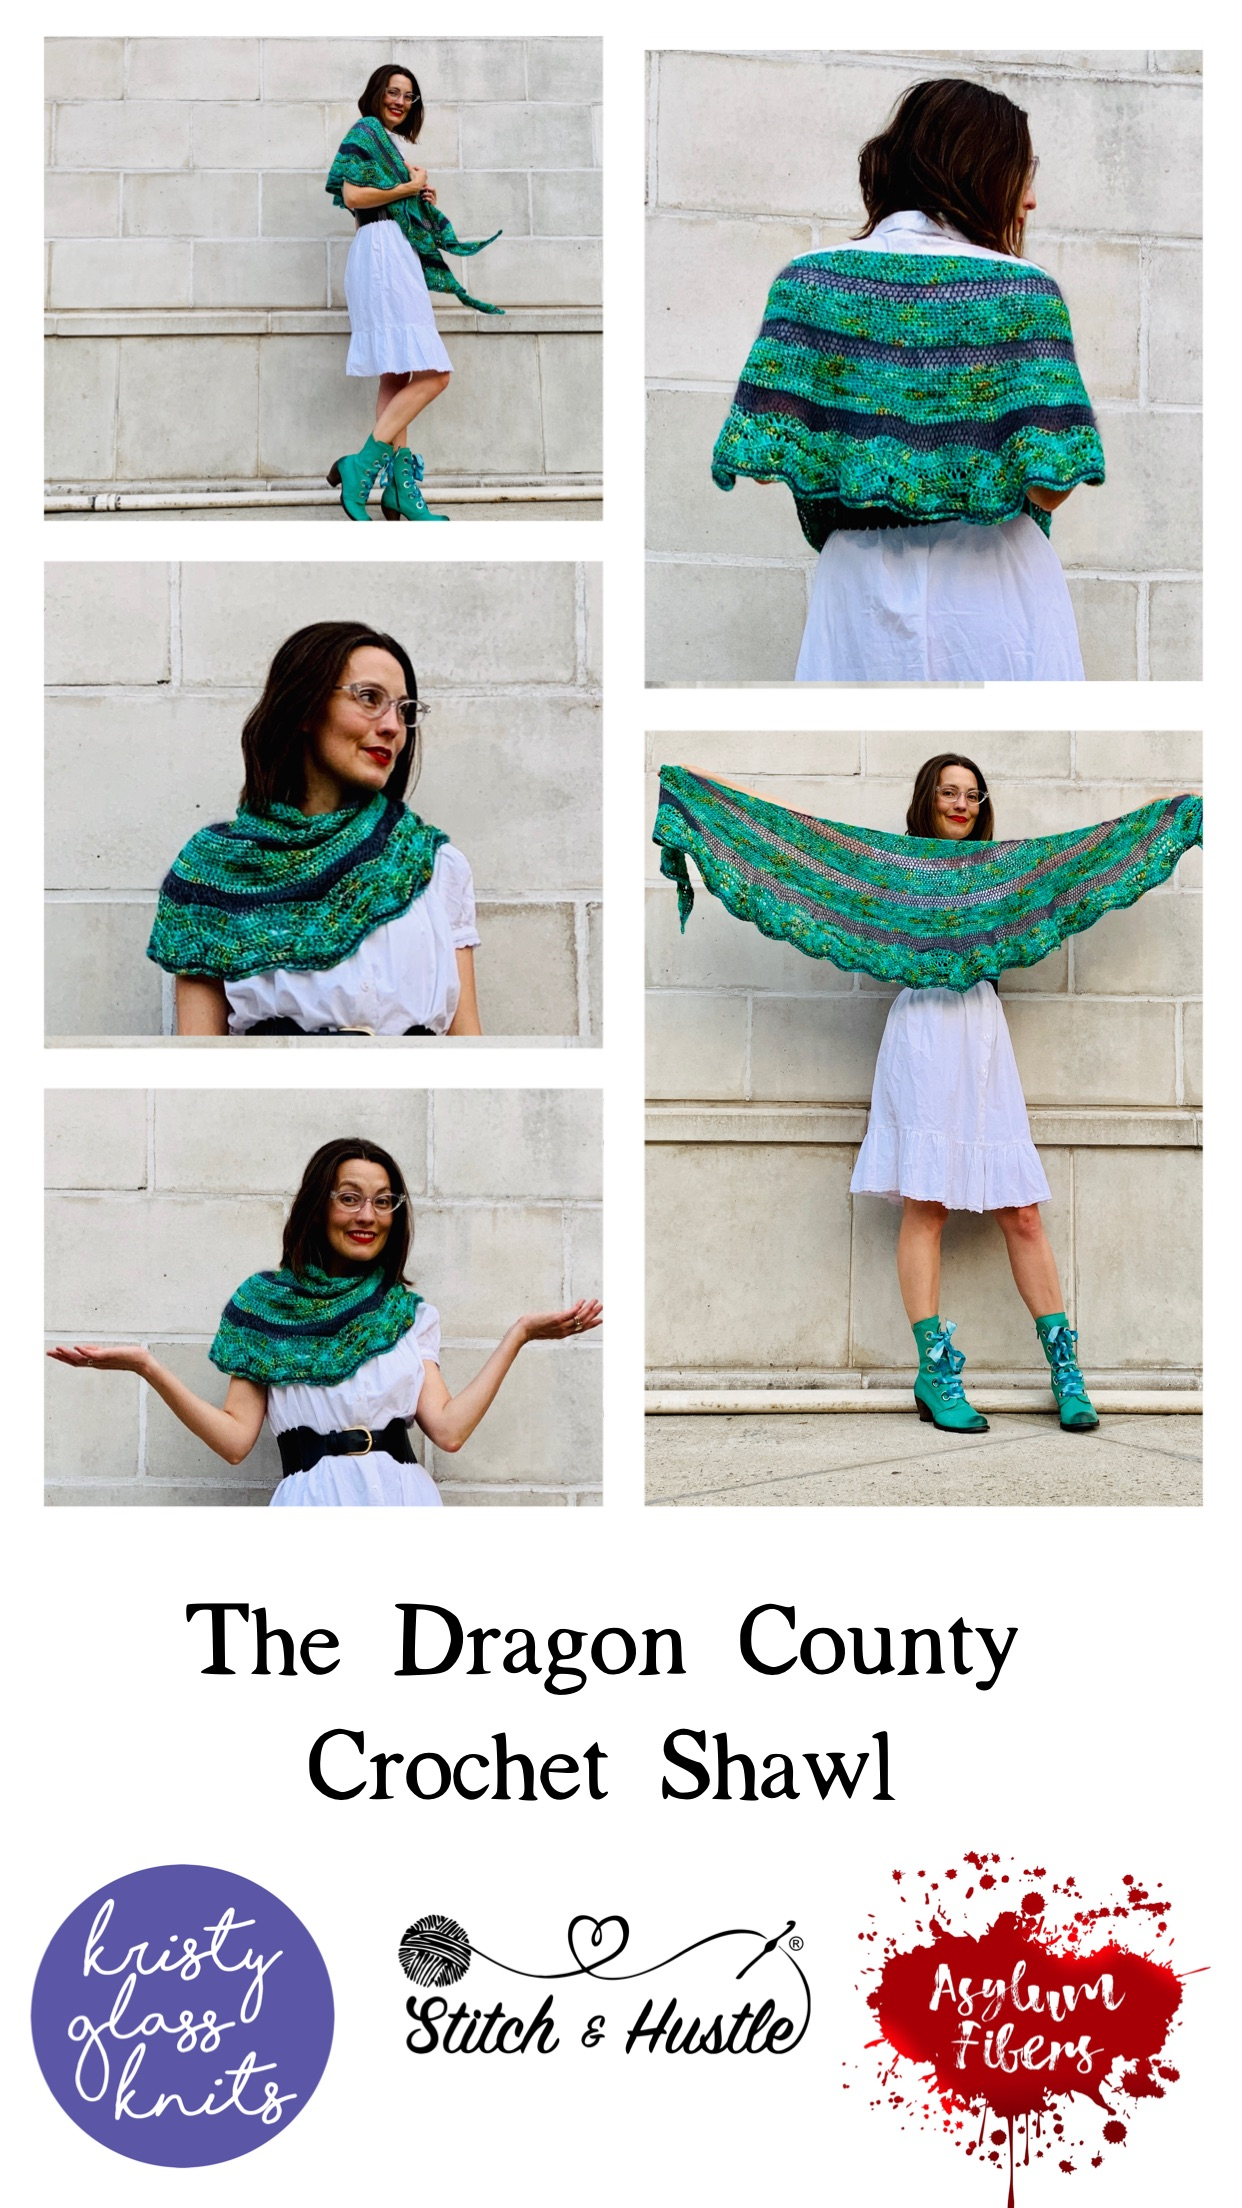 Dutchess_And_Dragons_Dragon_County_Shawl_Ferocity_1.jpg